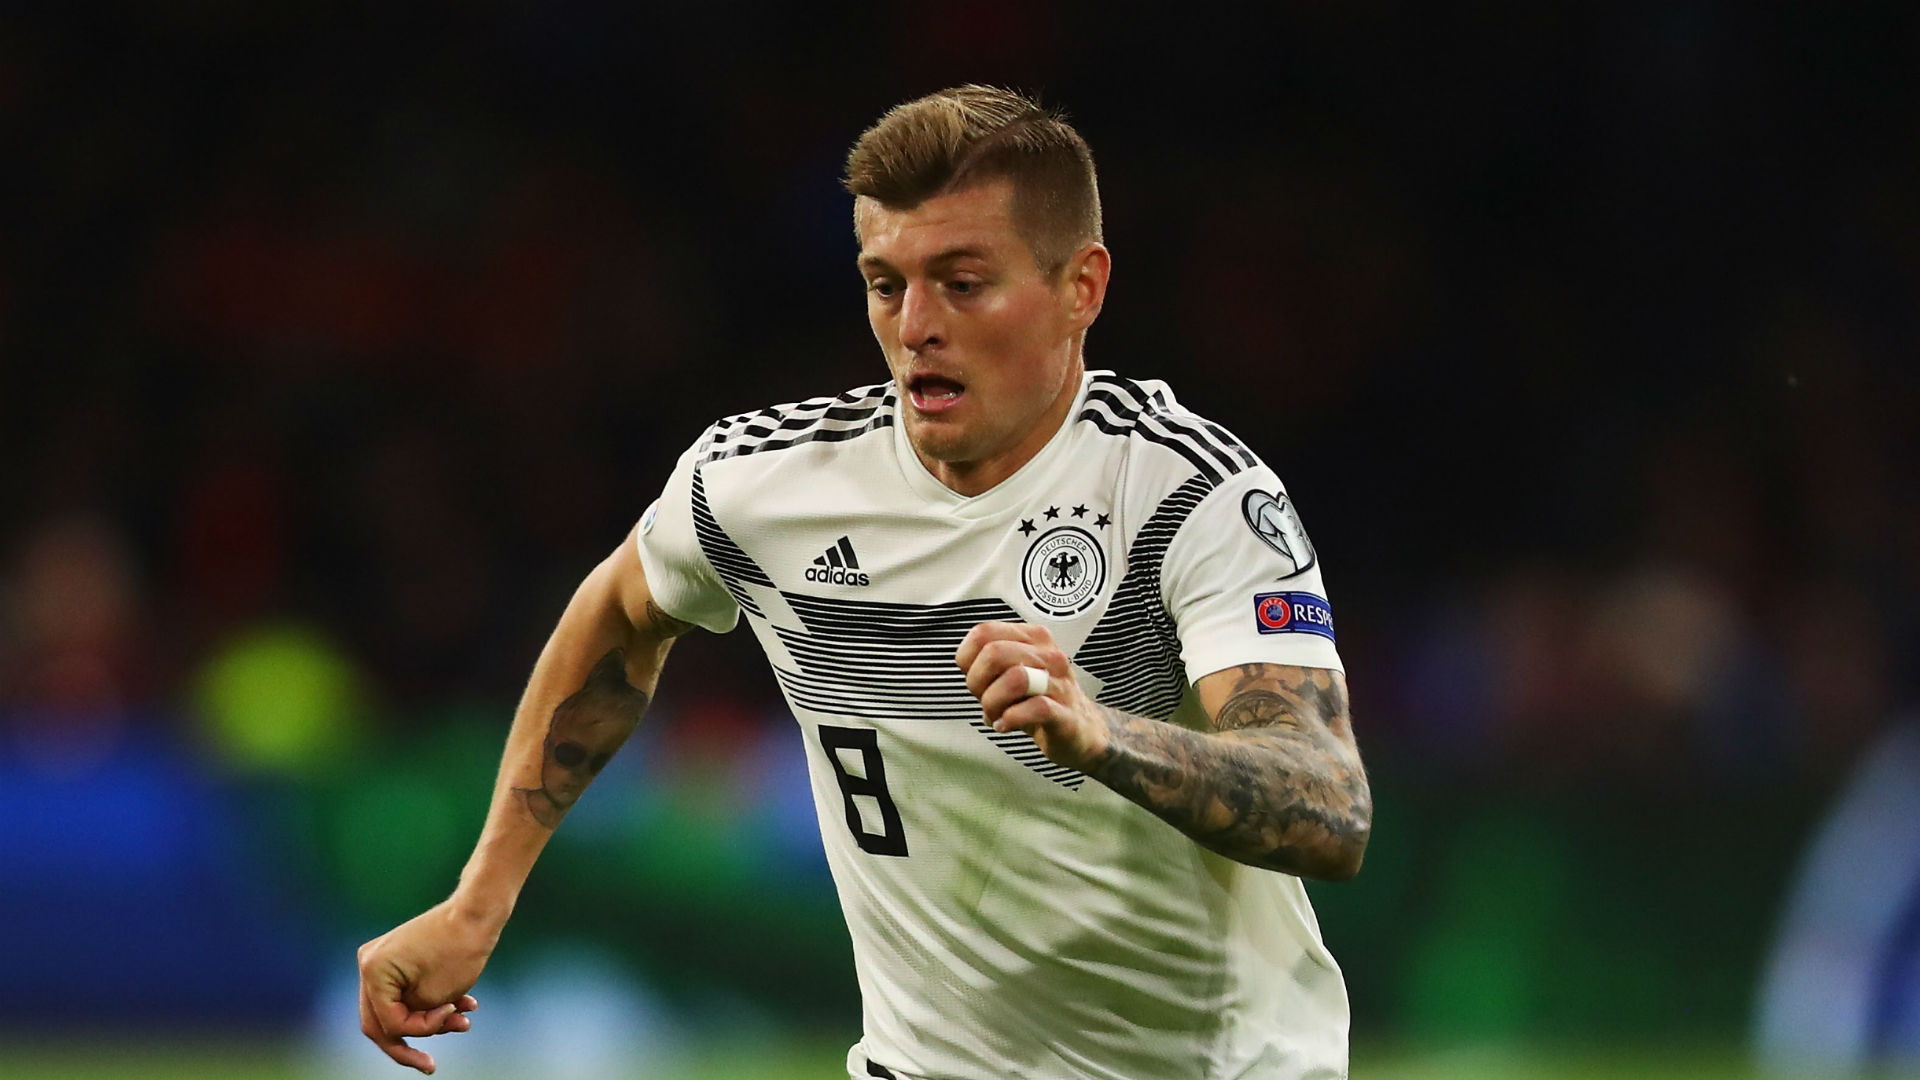 Germany will be without Toni Kroos and Marc-Andre ter Stegen in June, but Manuel Neuer could make his return from injury.